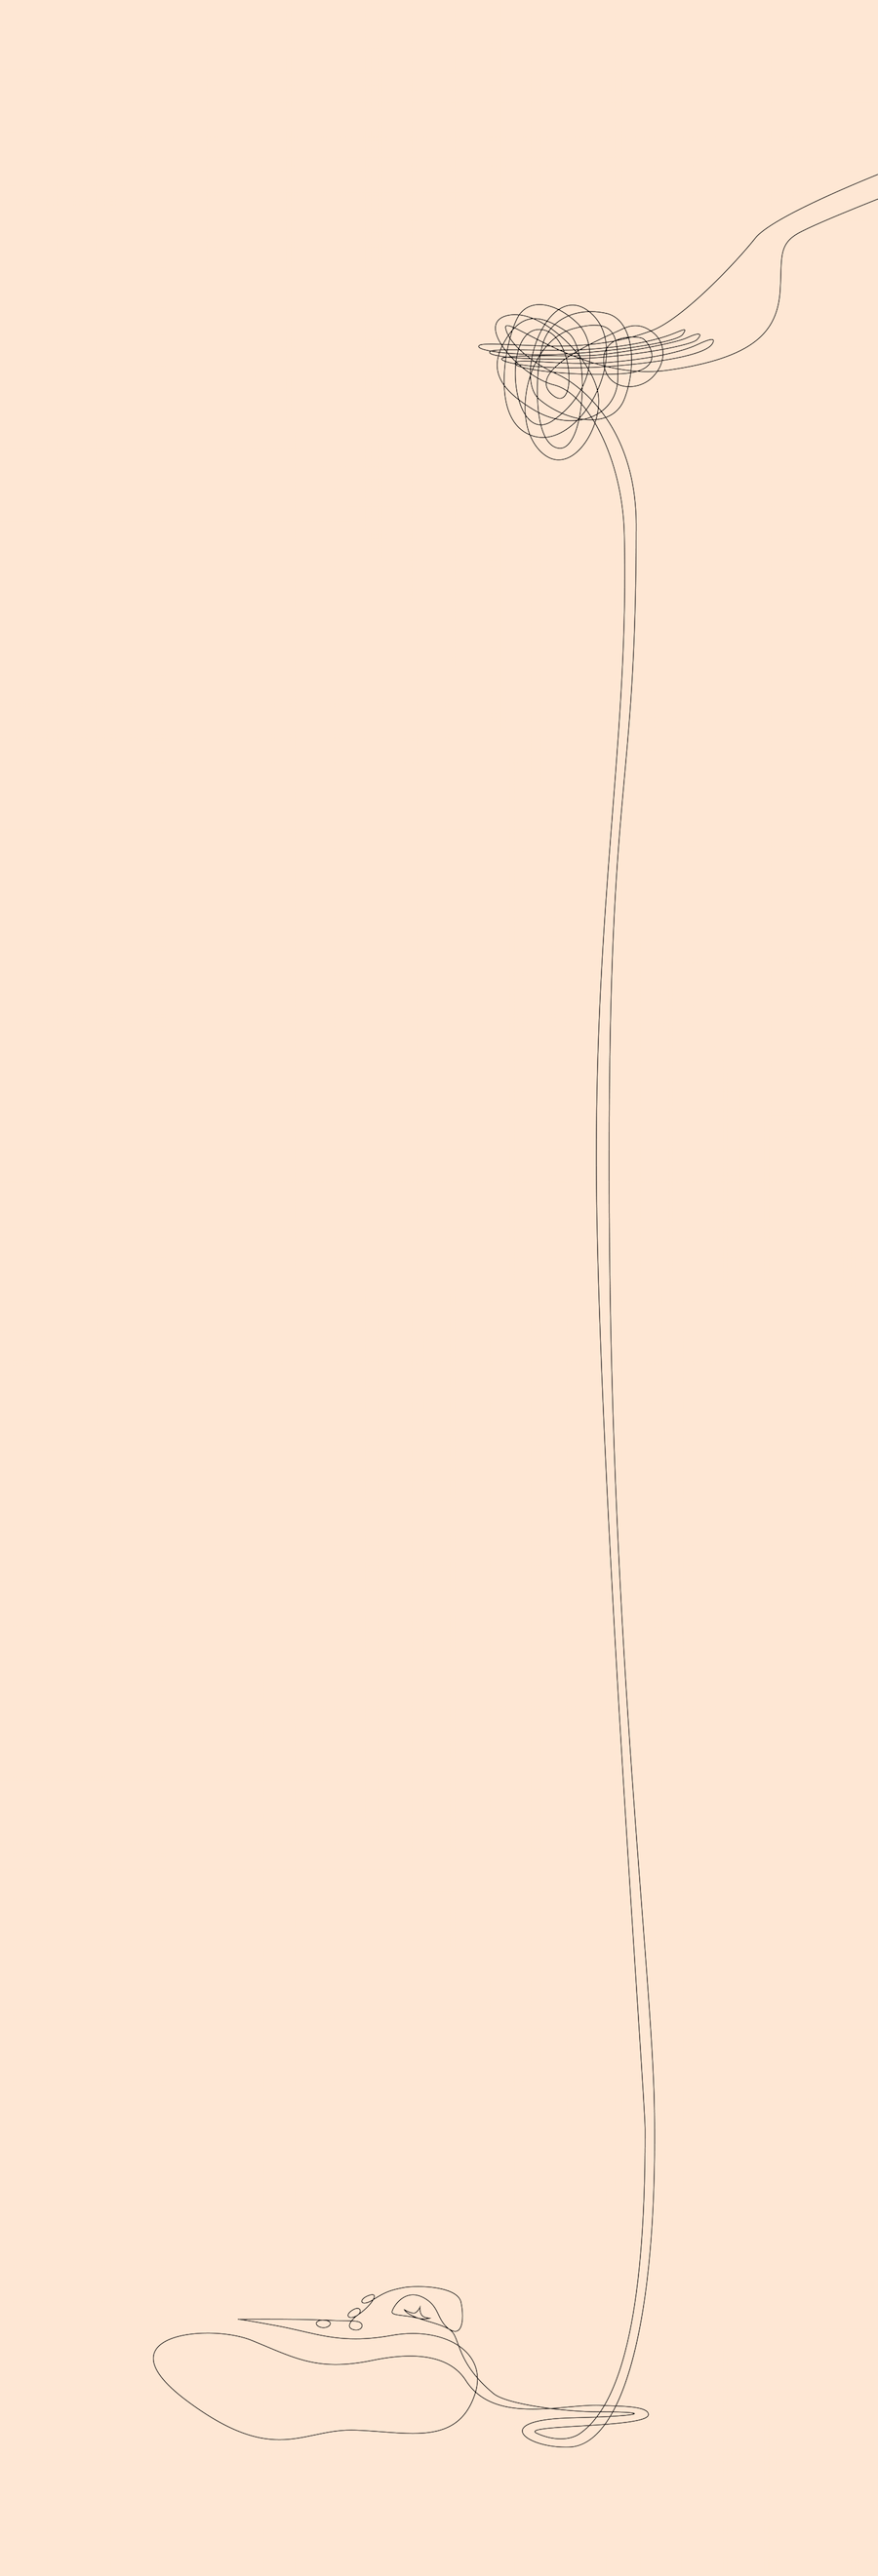 classic-sneakers-drawn-with-one-line11-900x2642